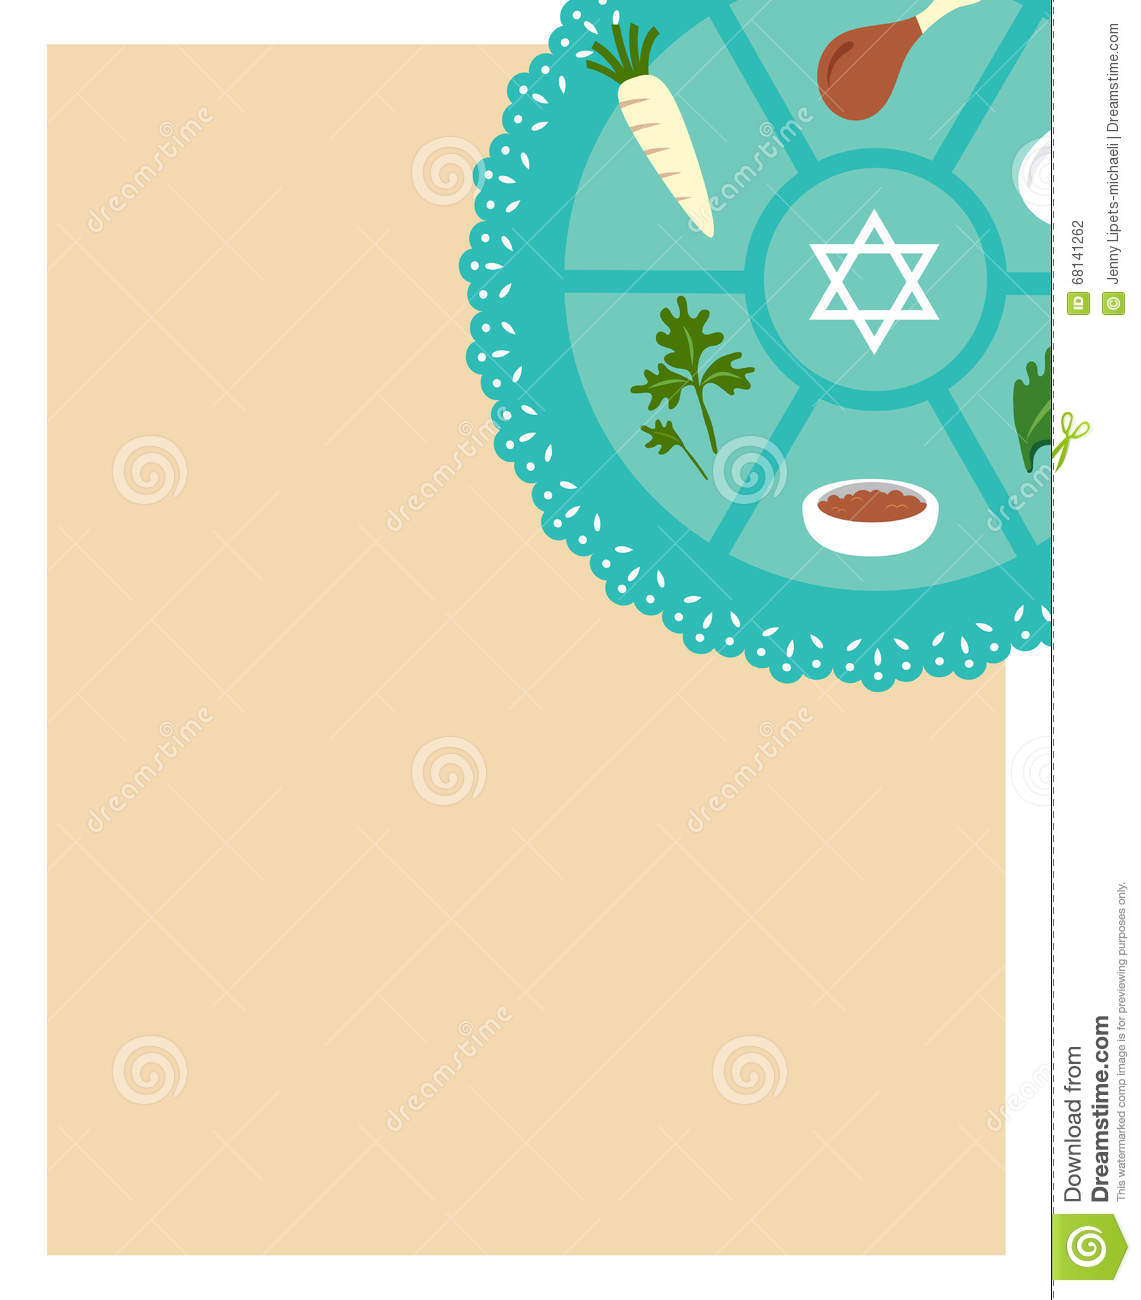 Passover seder flat icons eeting card template stock vector passover seder flat icons eeting card template buycottarizona